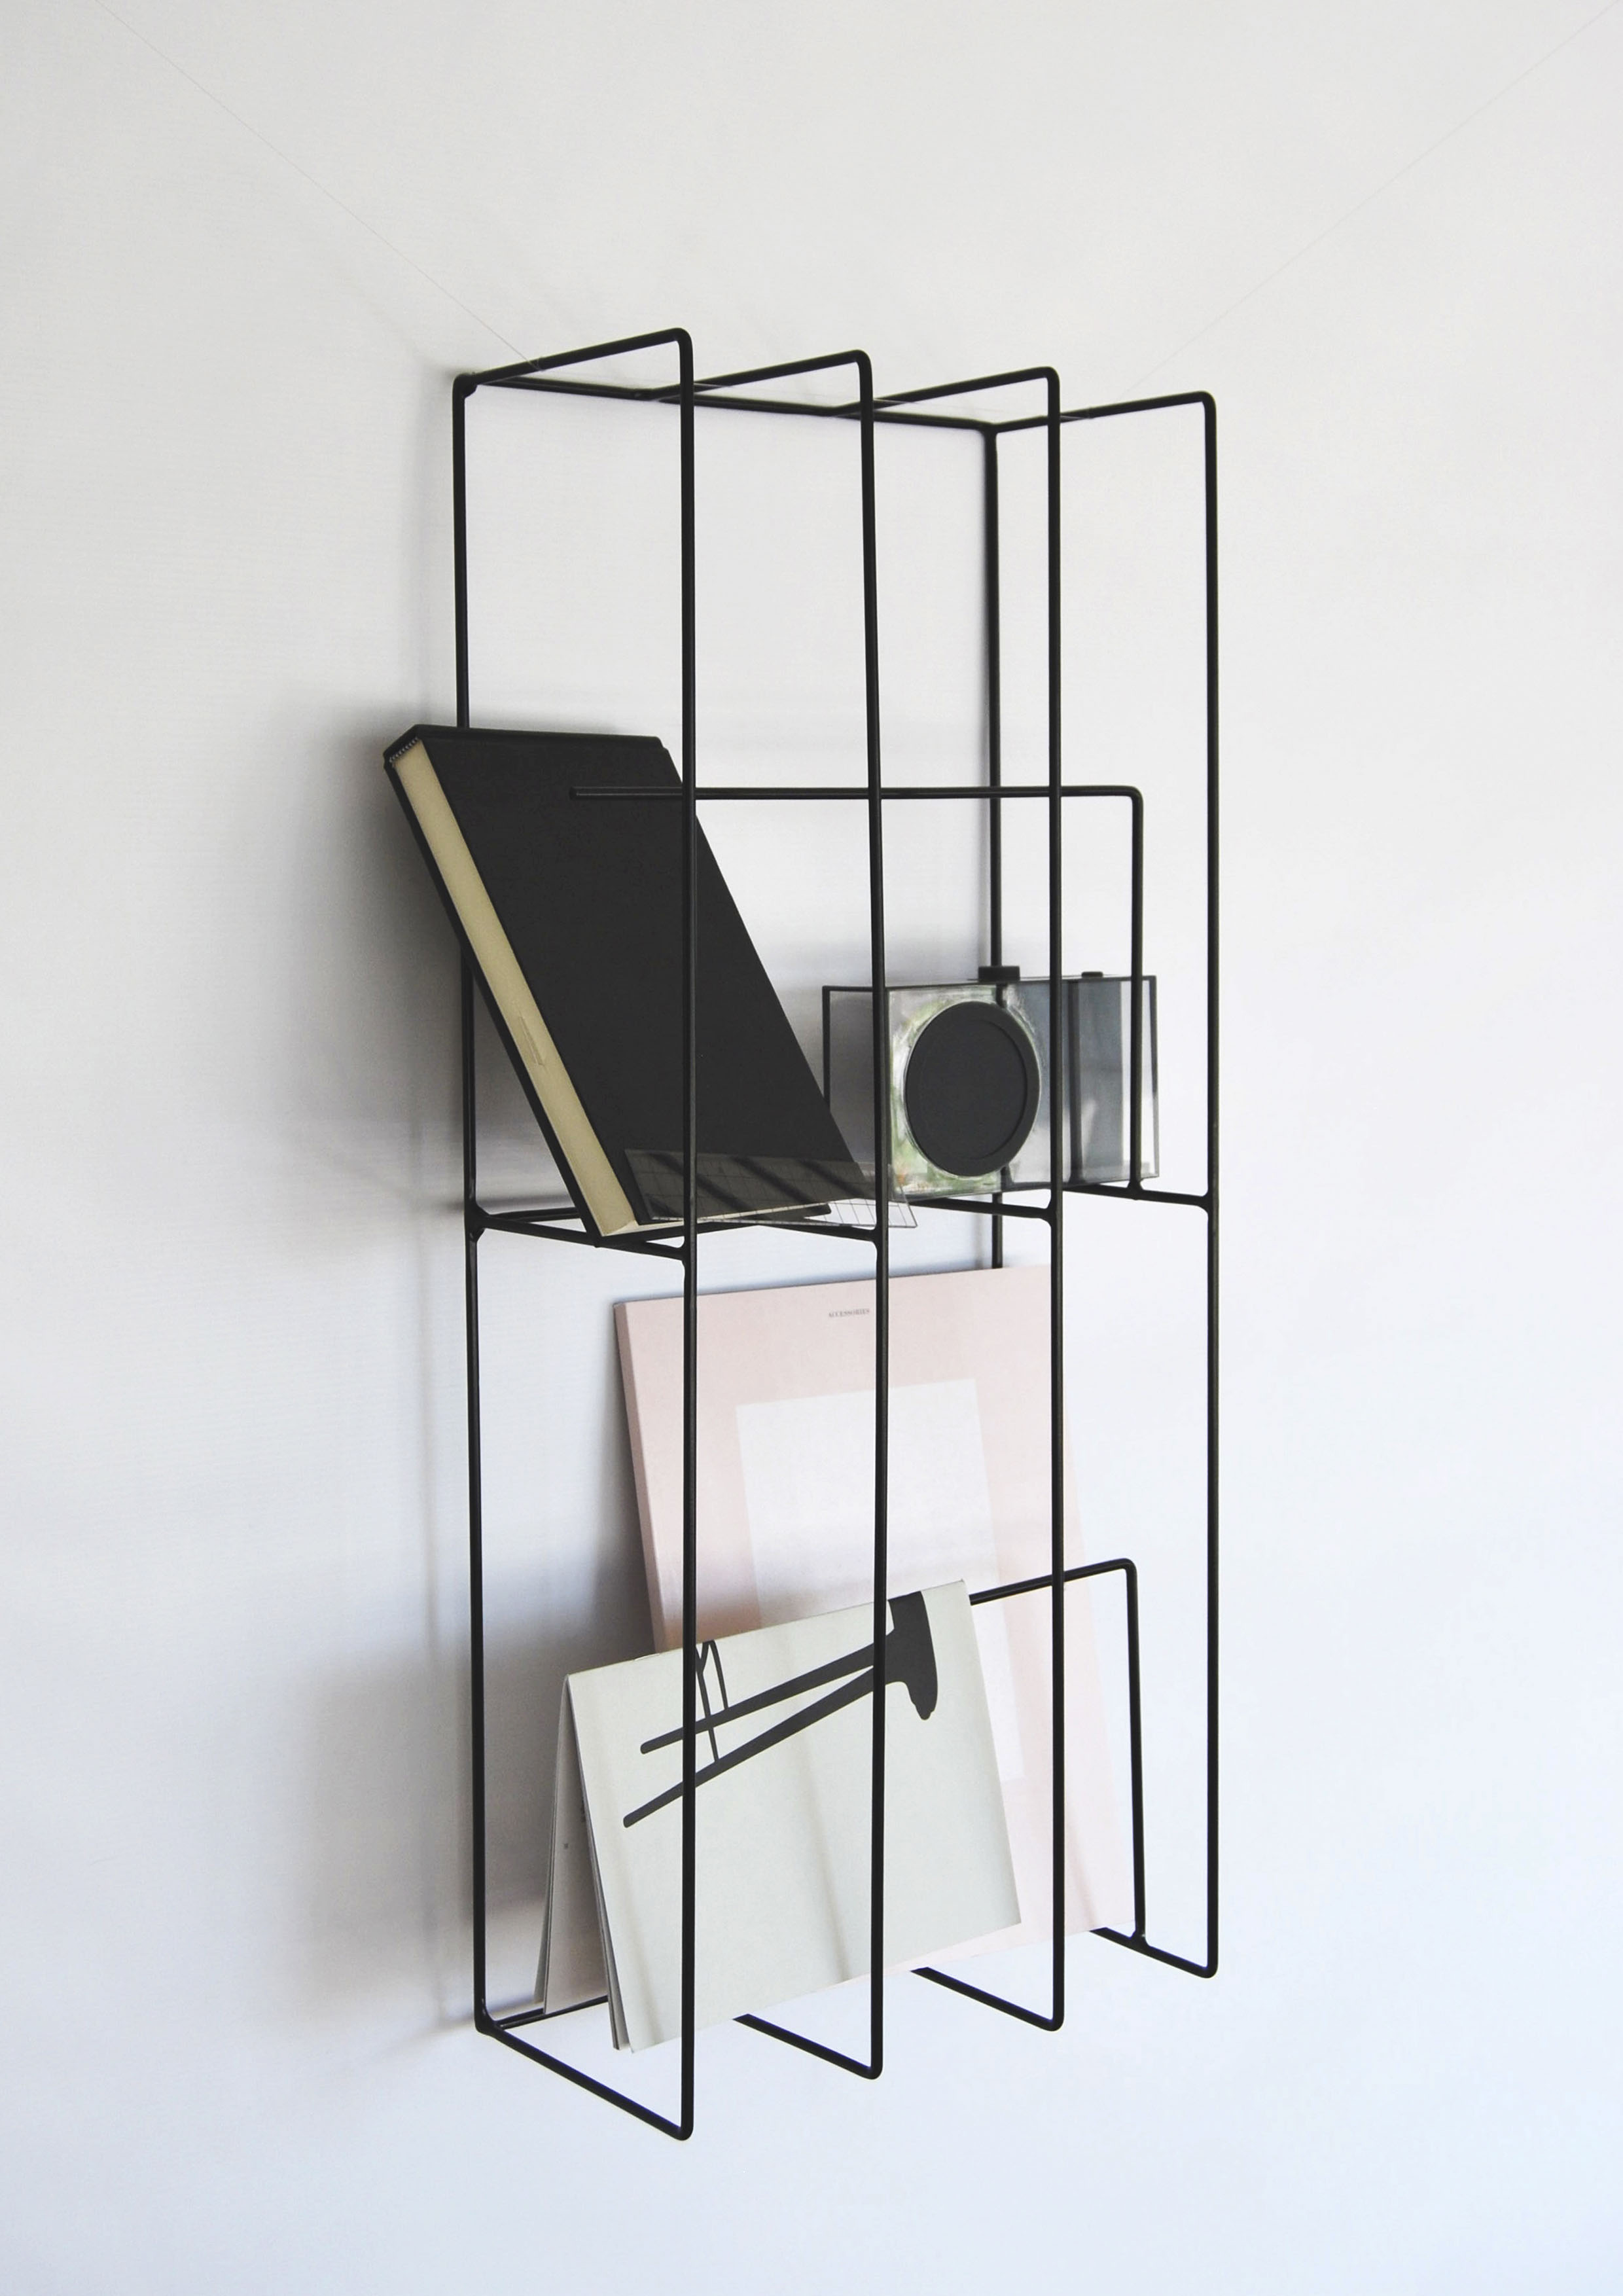 Chely wall storage